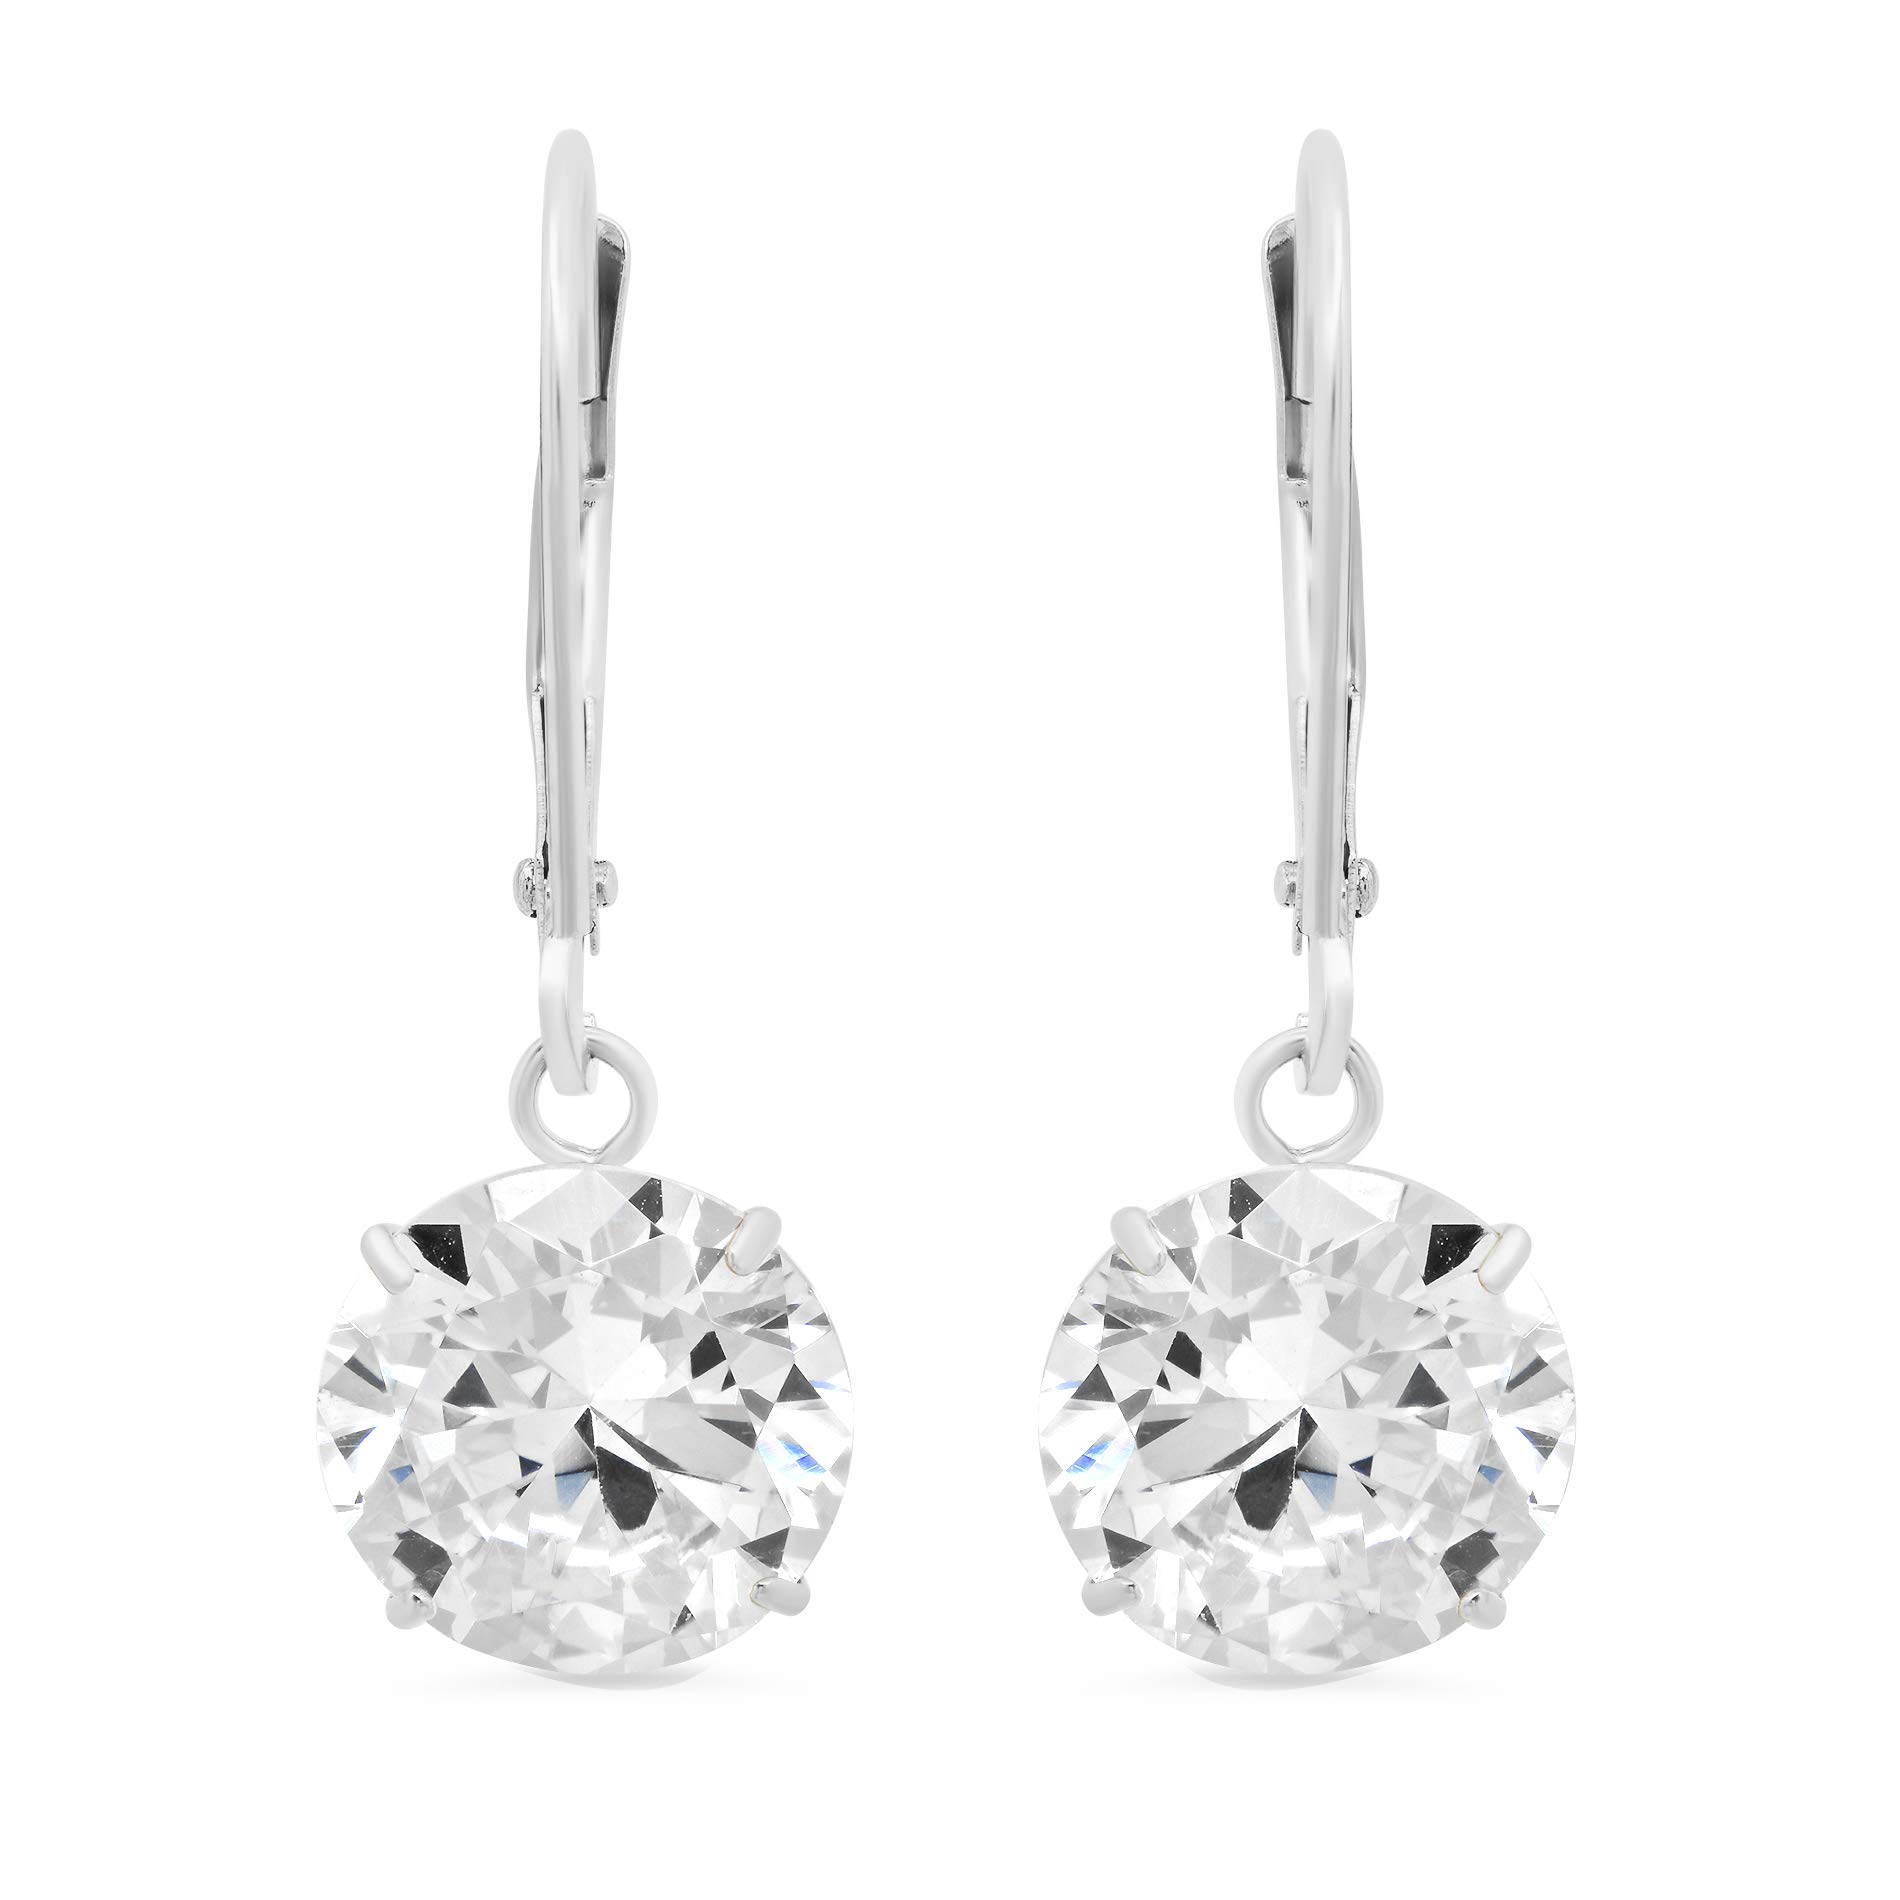 14k White Gold Leverback Earrings with Cubic Zirconia Dangles | 5 CT.TW. | Gift Boxed